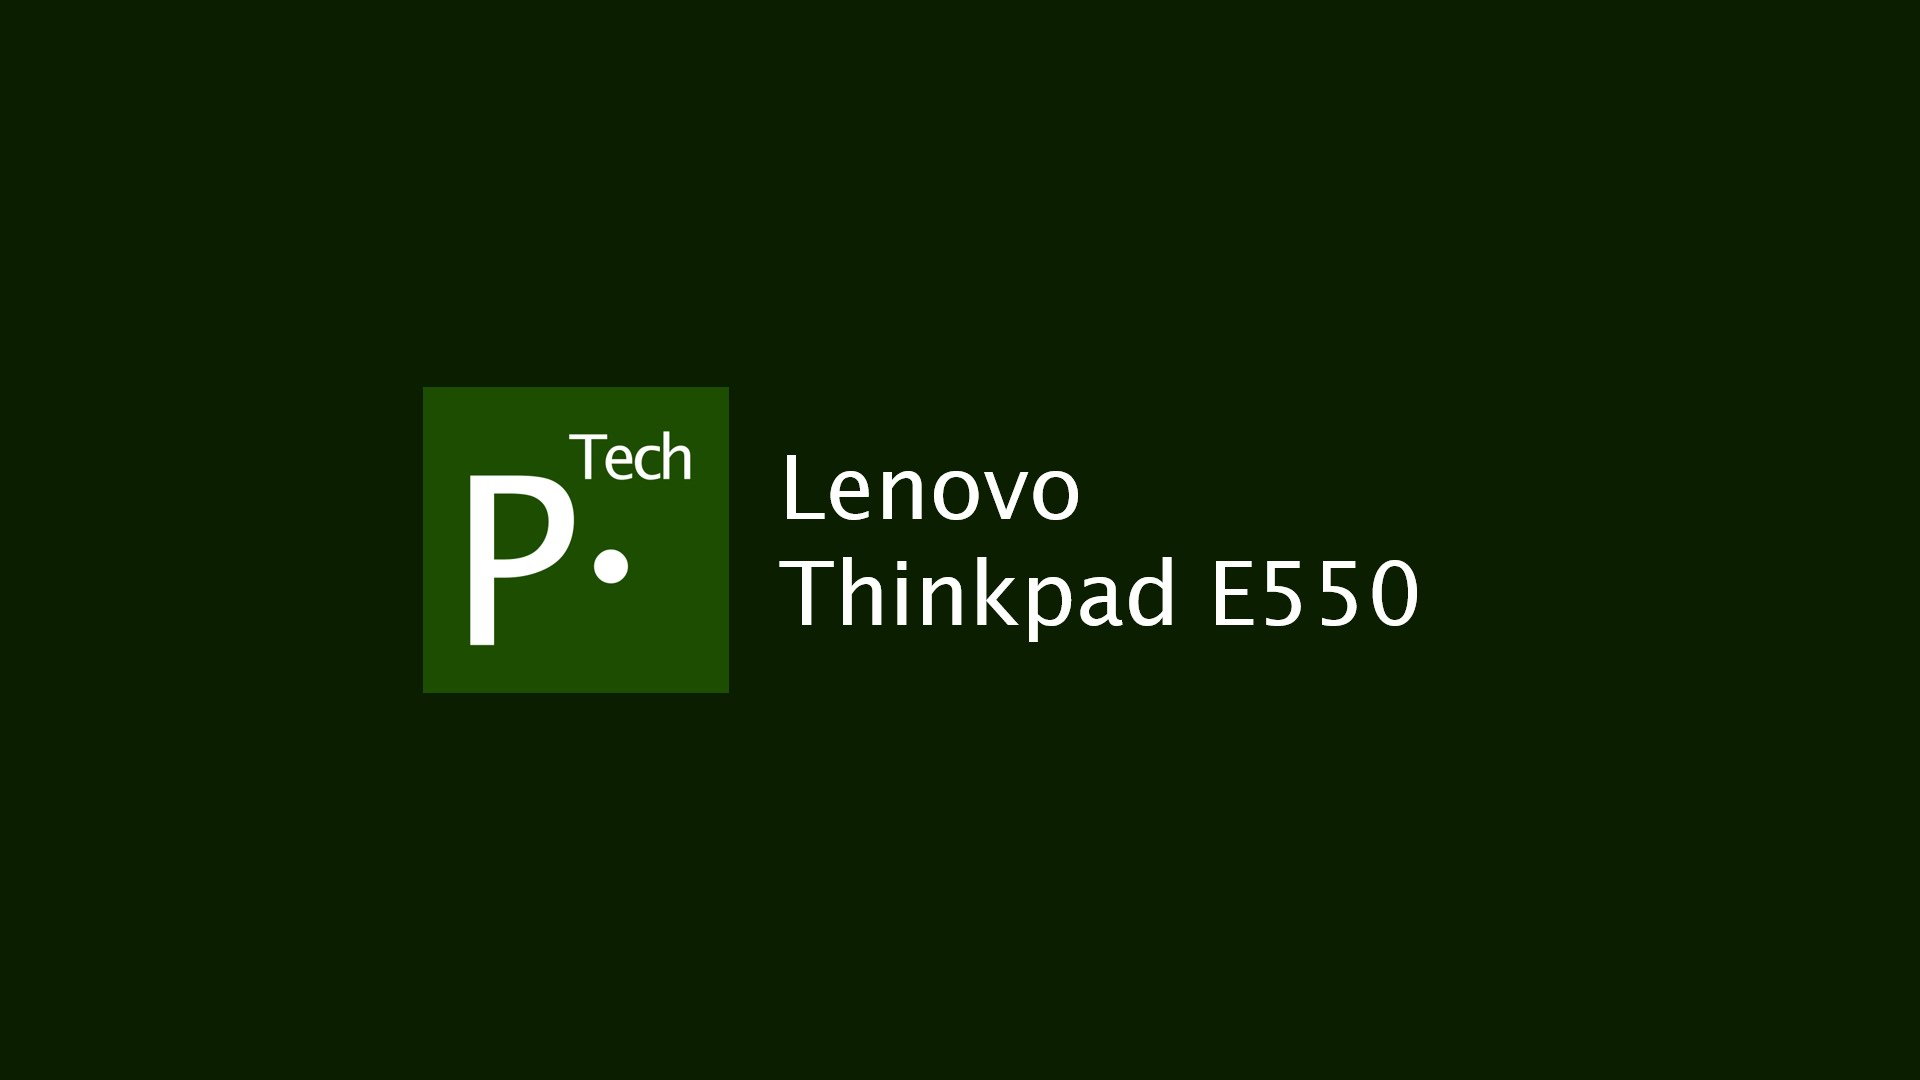 wallpaper.wiki-Lenovo-Thinkpad-E550-Background-PIC-WPD003129